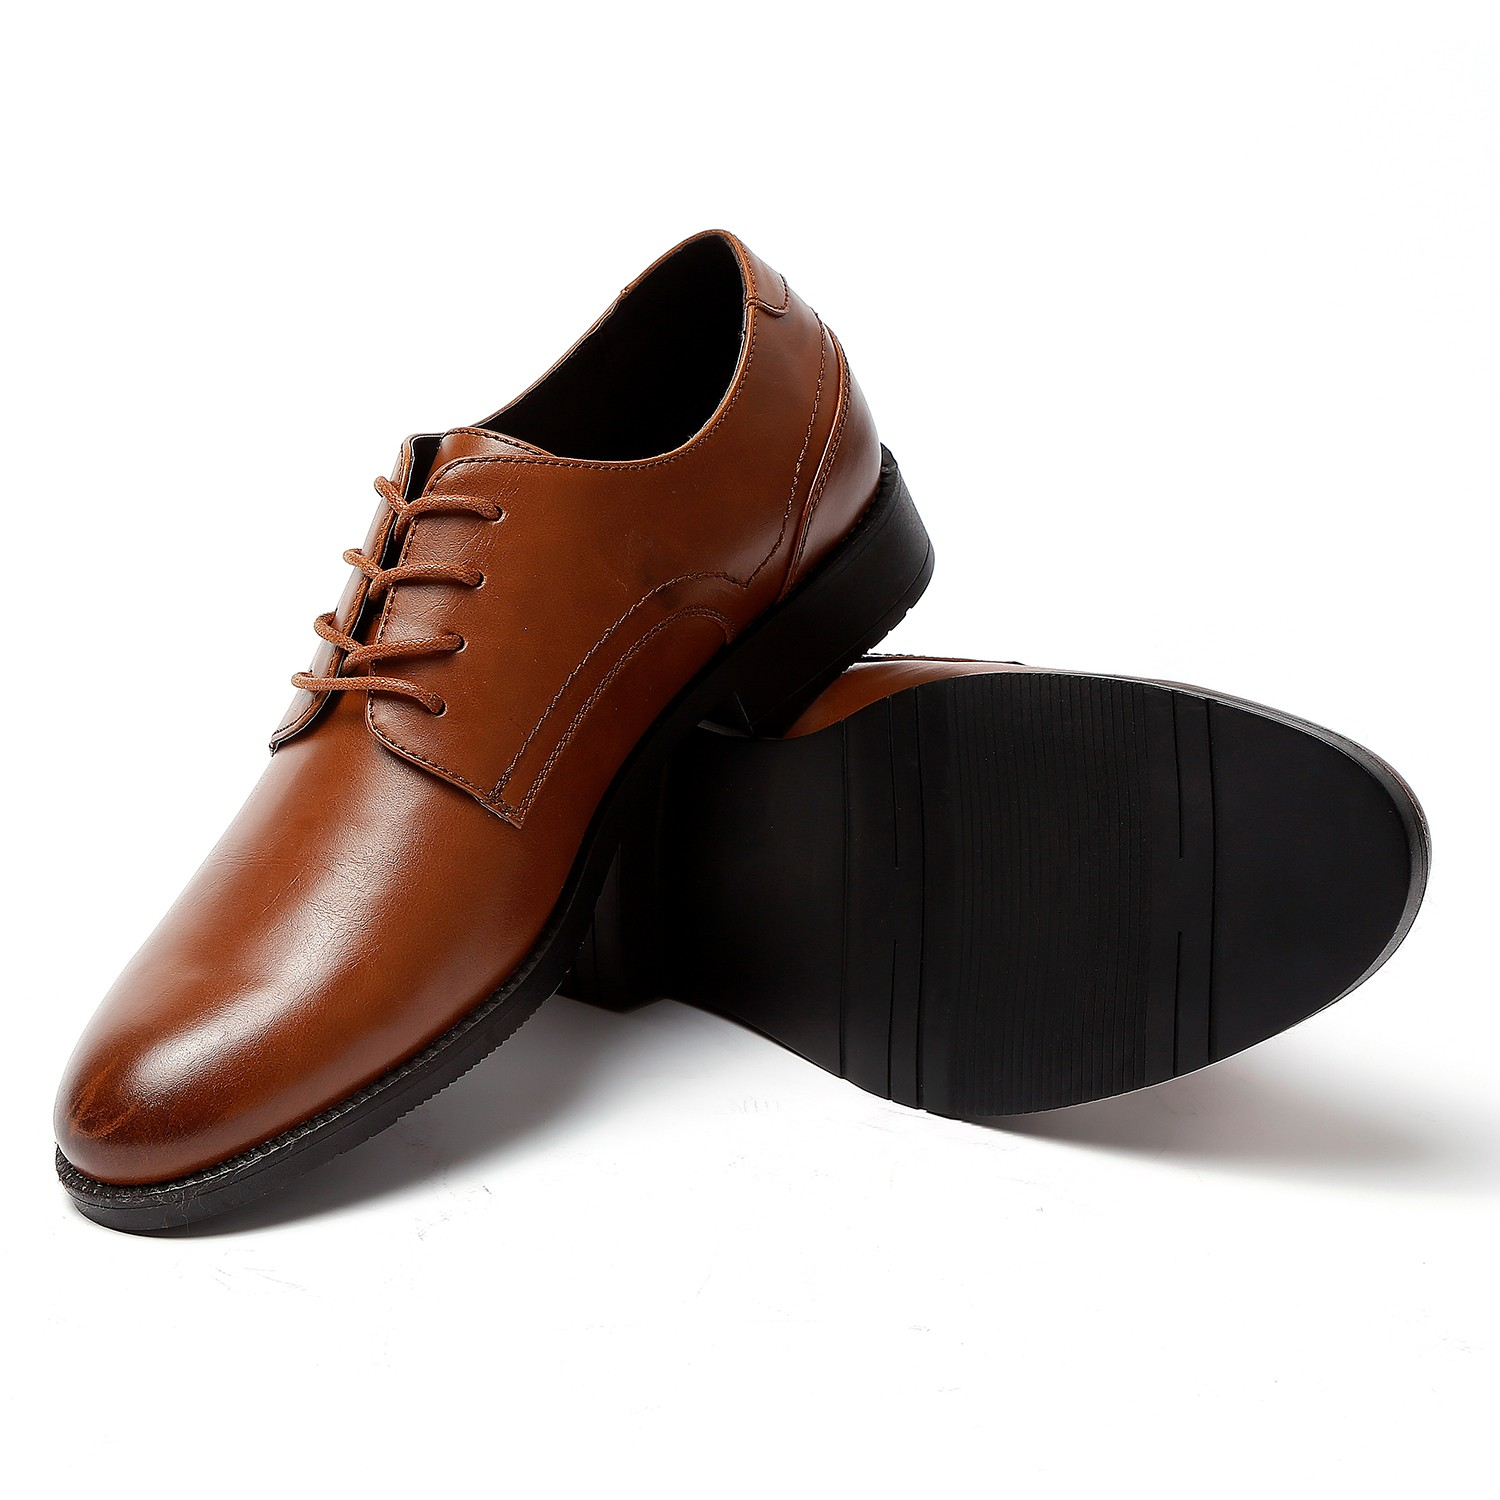 GM GOLAIMAN GM01 Men Business Shoes Solid Color Round Toe Modern Style - Brown US 8.5